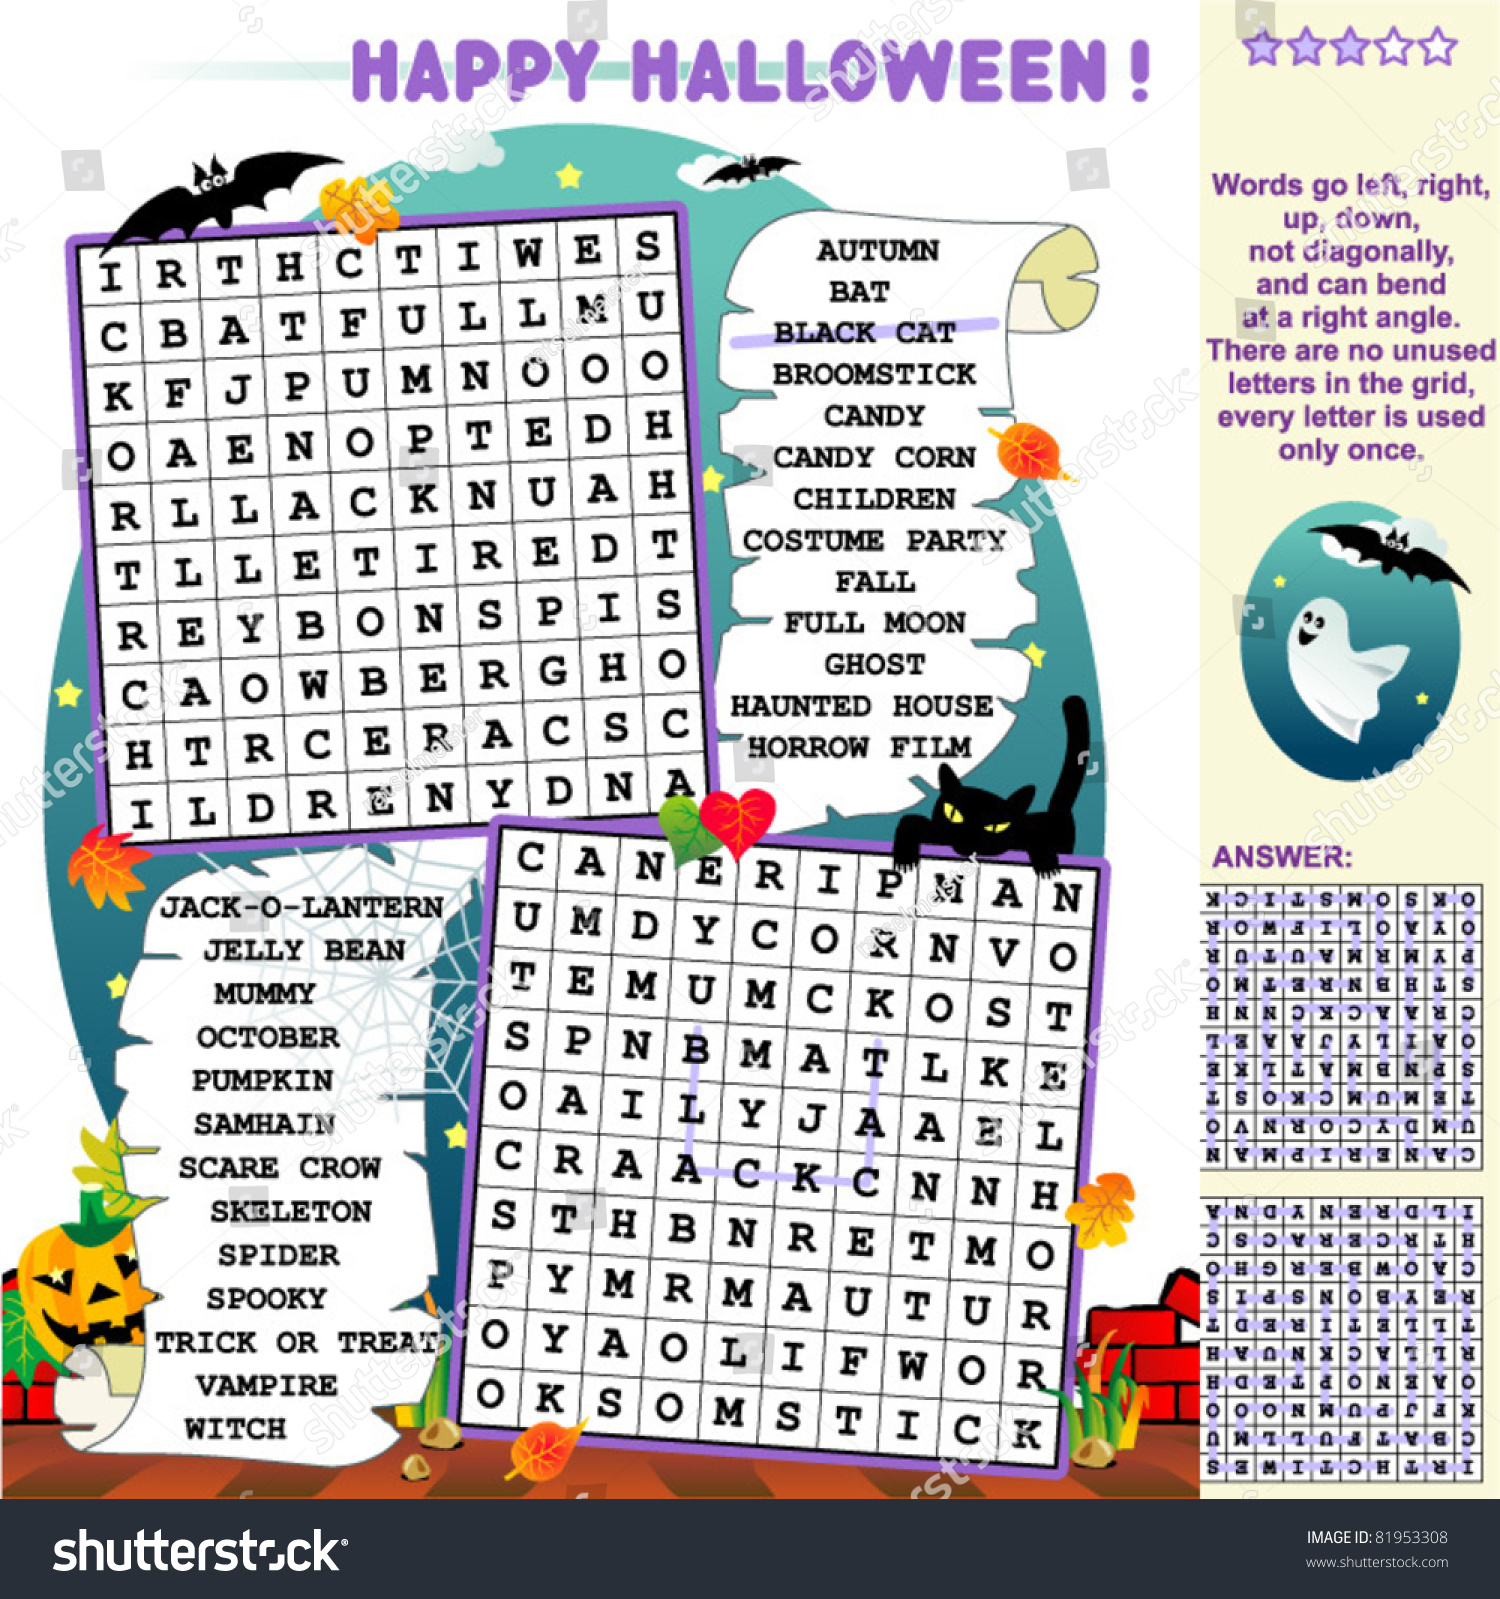 Halloween Holiday Zigzag Word Search Puzzle Answer Included Illustrated Jack O Lantern